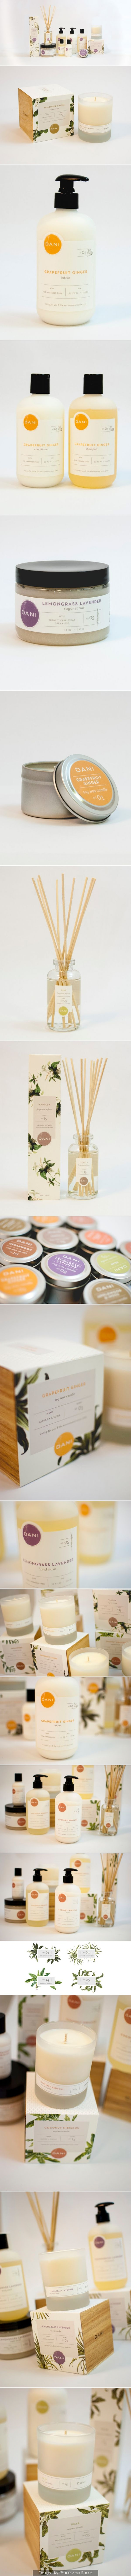 DANI Naturals . packaging design . wellness products . label design . elegant . farmaceutical